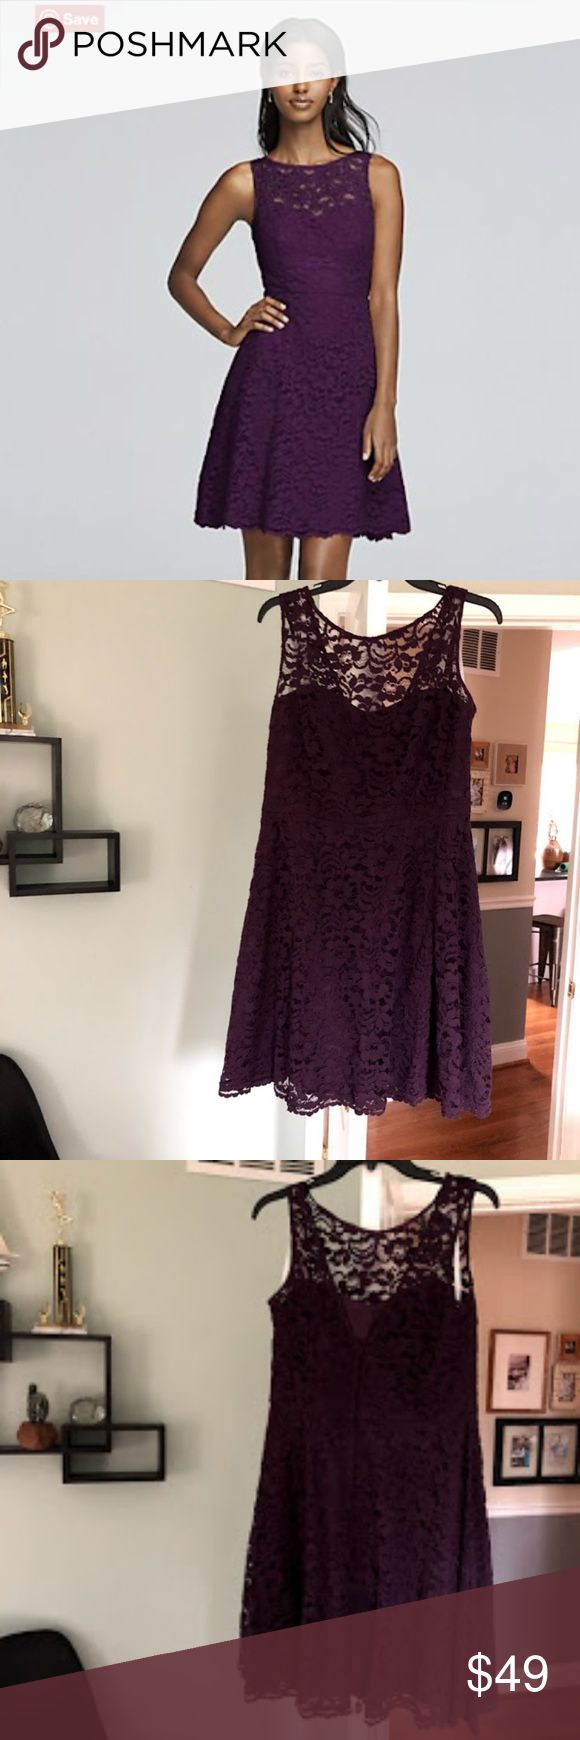 DAVID'S BRIDAL short sleeveless lace plum dress DAVID'S BRIDAL short sleeveless lace plum dress, size 12 non smoking home, no flaws worn once, 52% Nylon 48% Rayon. The illusion lace neckline adds a cool cutout effect to this short lace bridesmaid dress. High illusion sweetheart neckline. Skirt sits above the knee with scalloped hemline. Fully lined. Zipper Back. Imported polyester. David's Bridal Dresses Mini